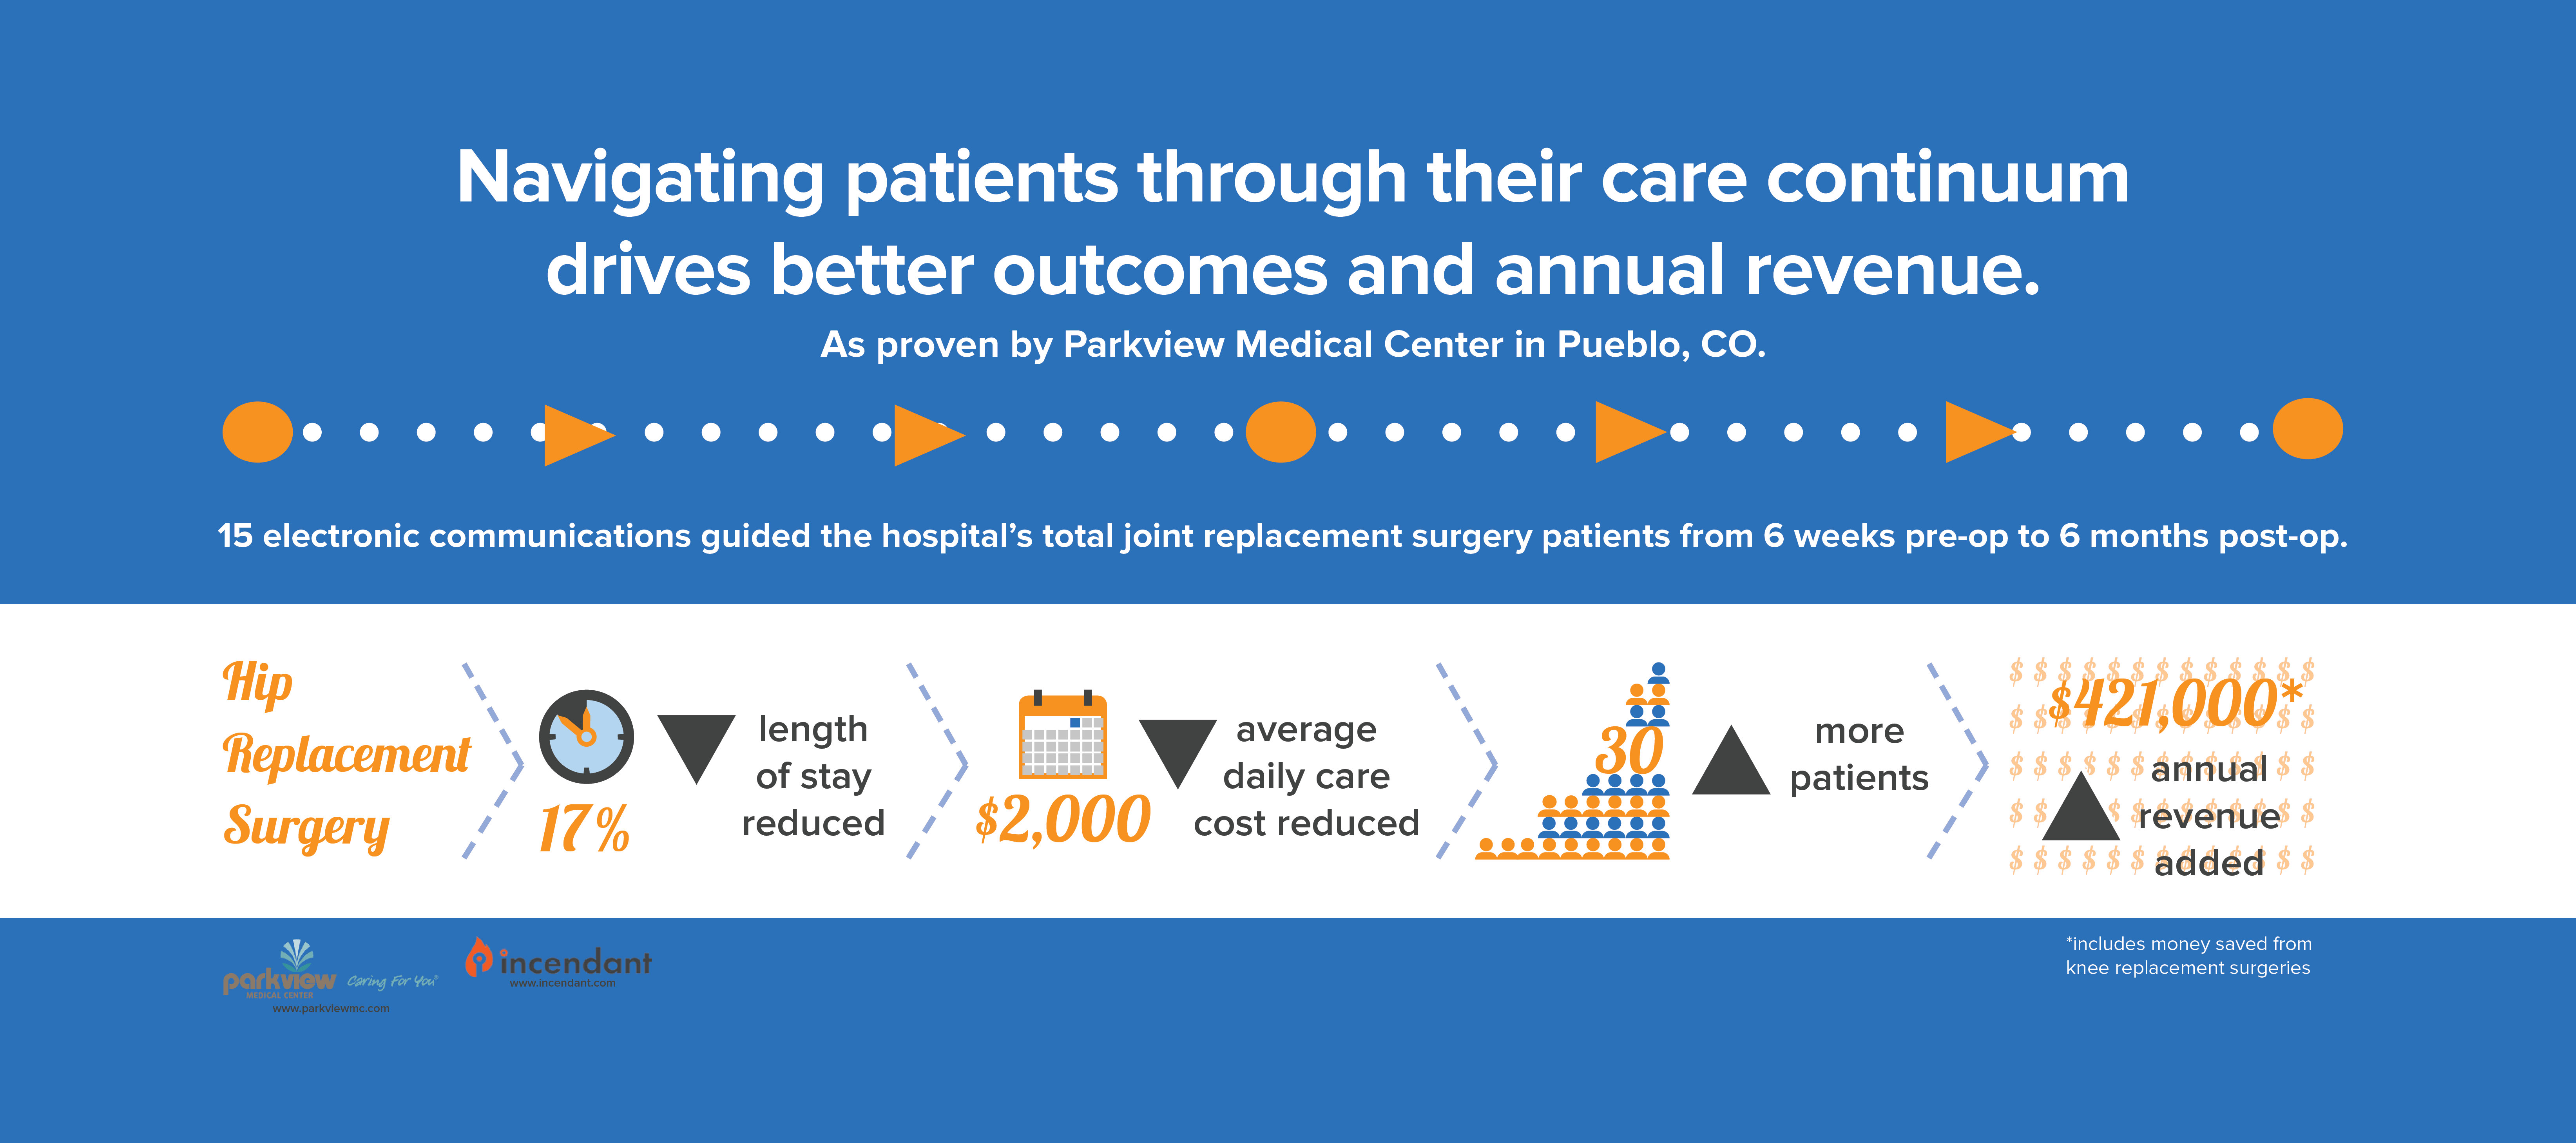 Navigating_patients_through_their_care_continnum_improves_outcomes